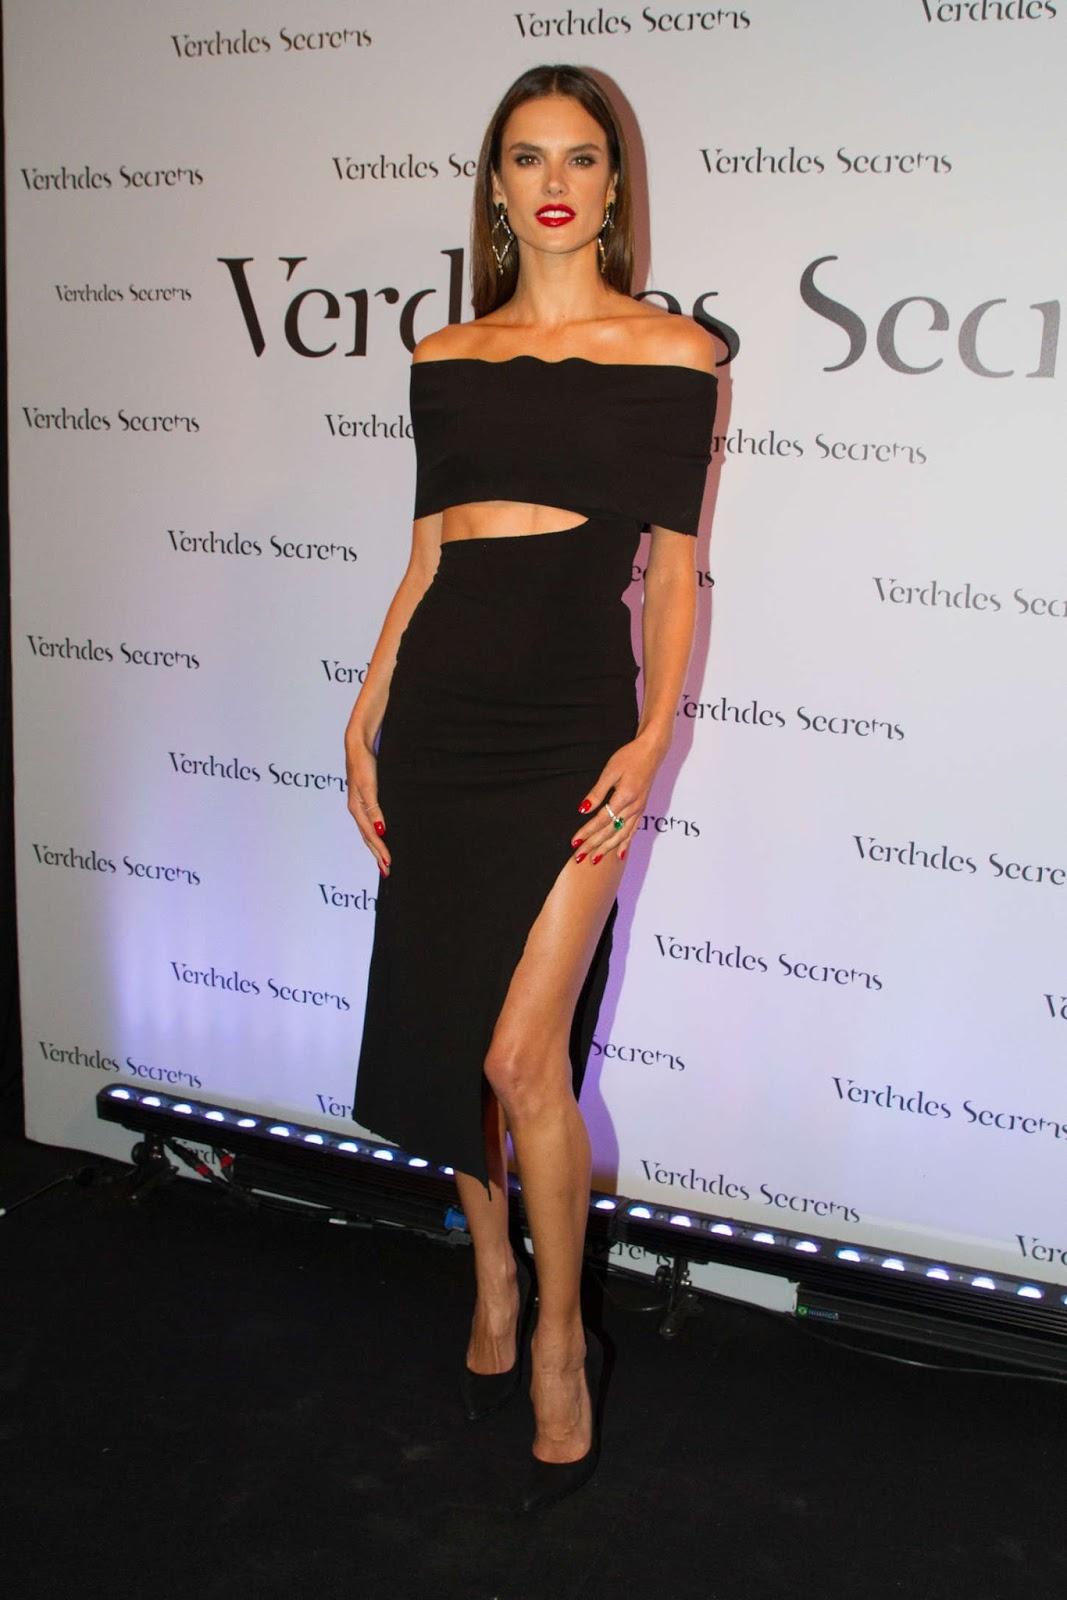 Alessandra Ambrosio is sultry at the 'Verdades Secretas' party in Sao Paulo